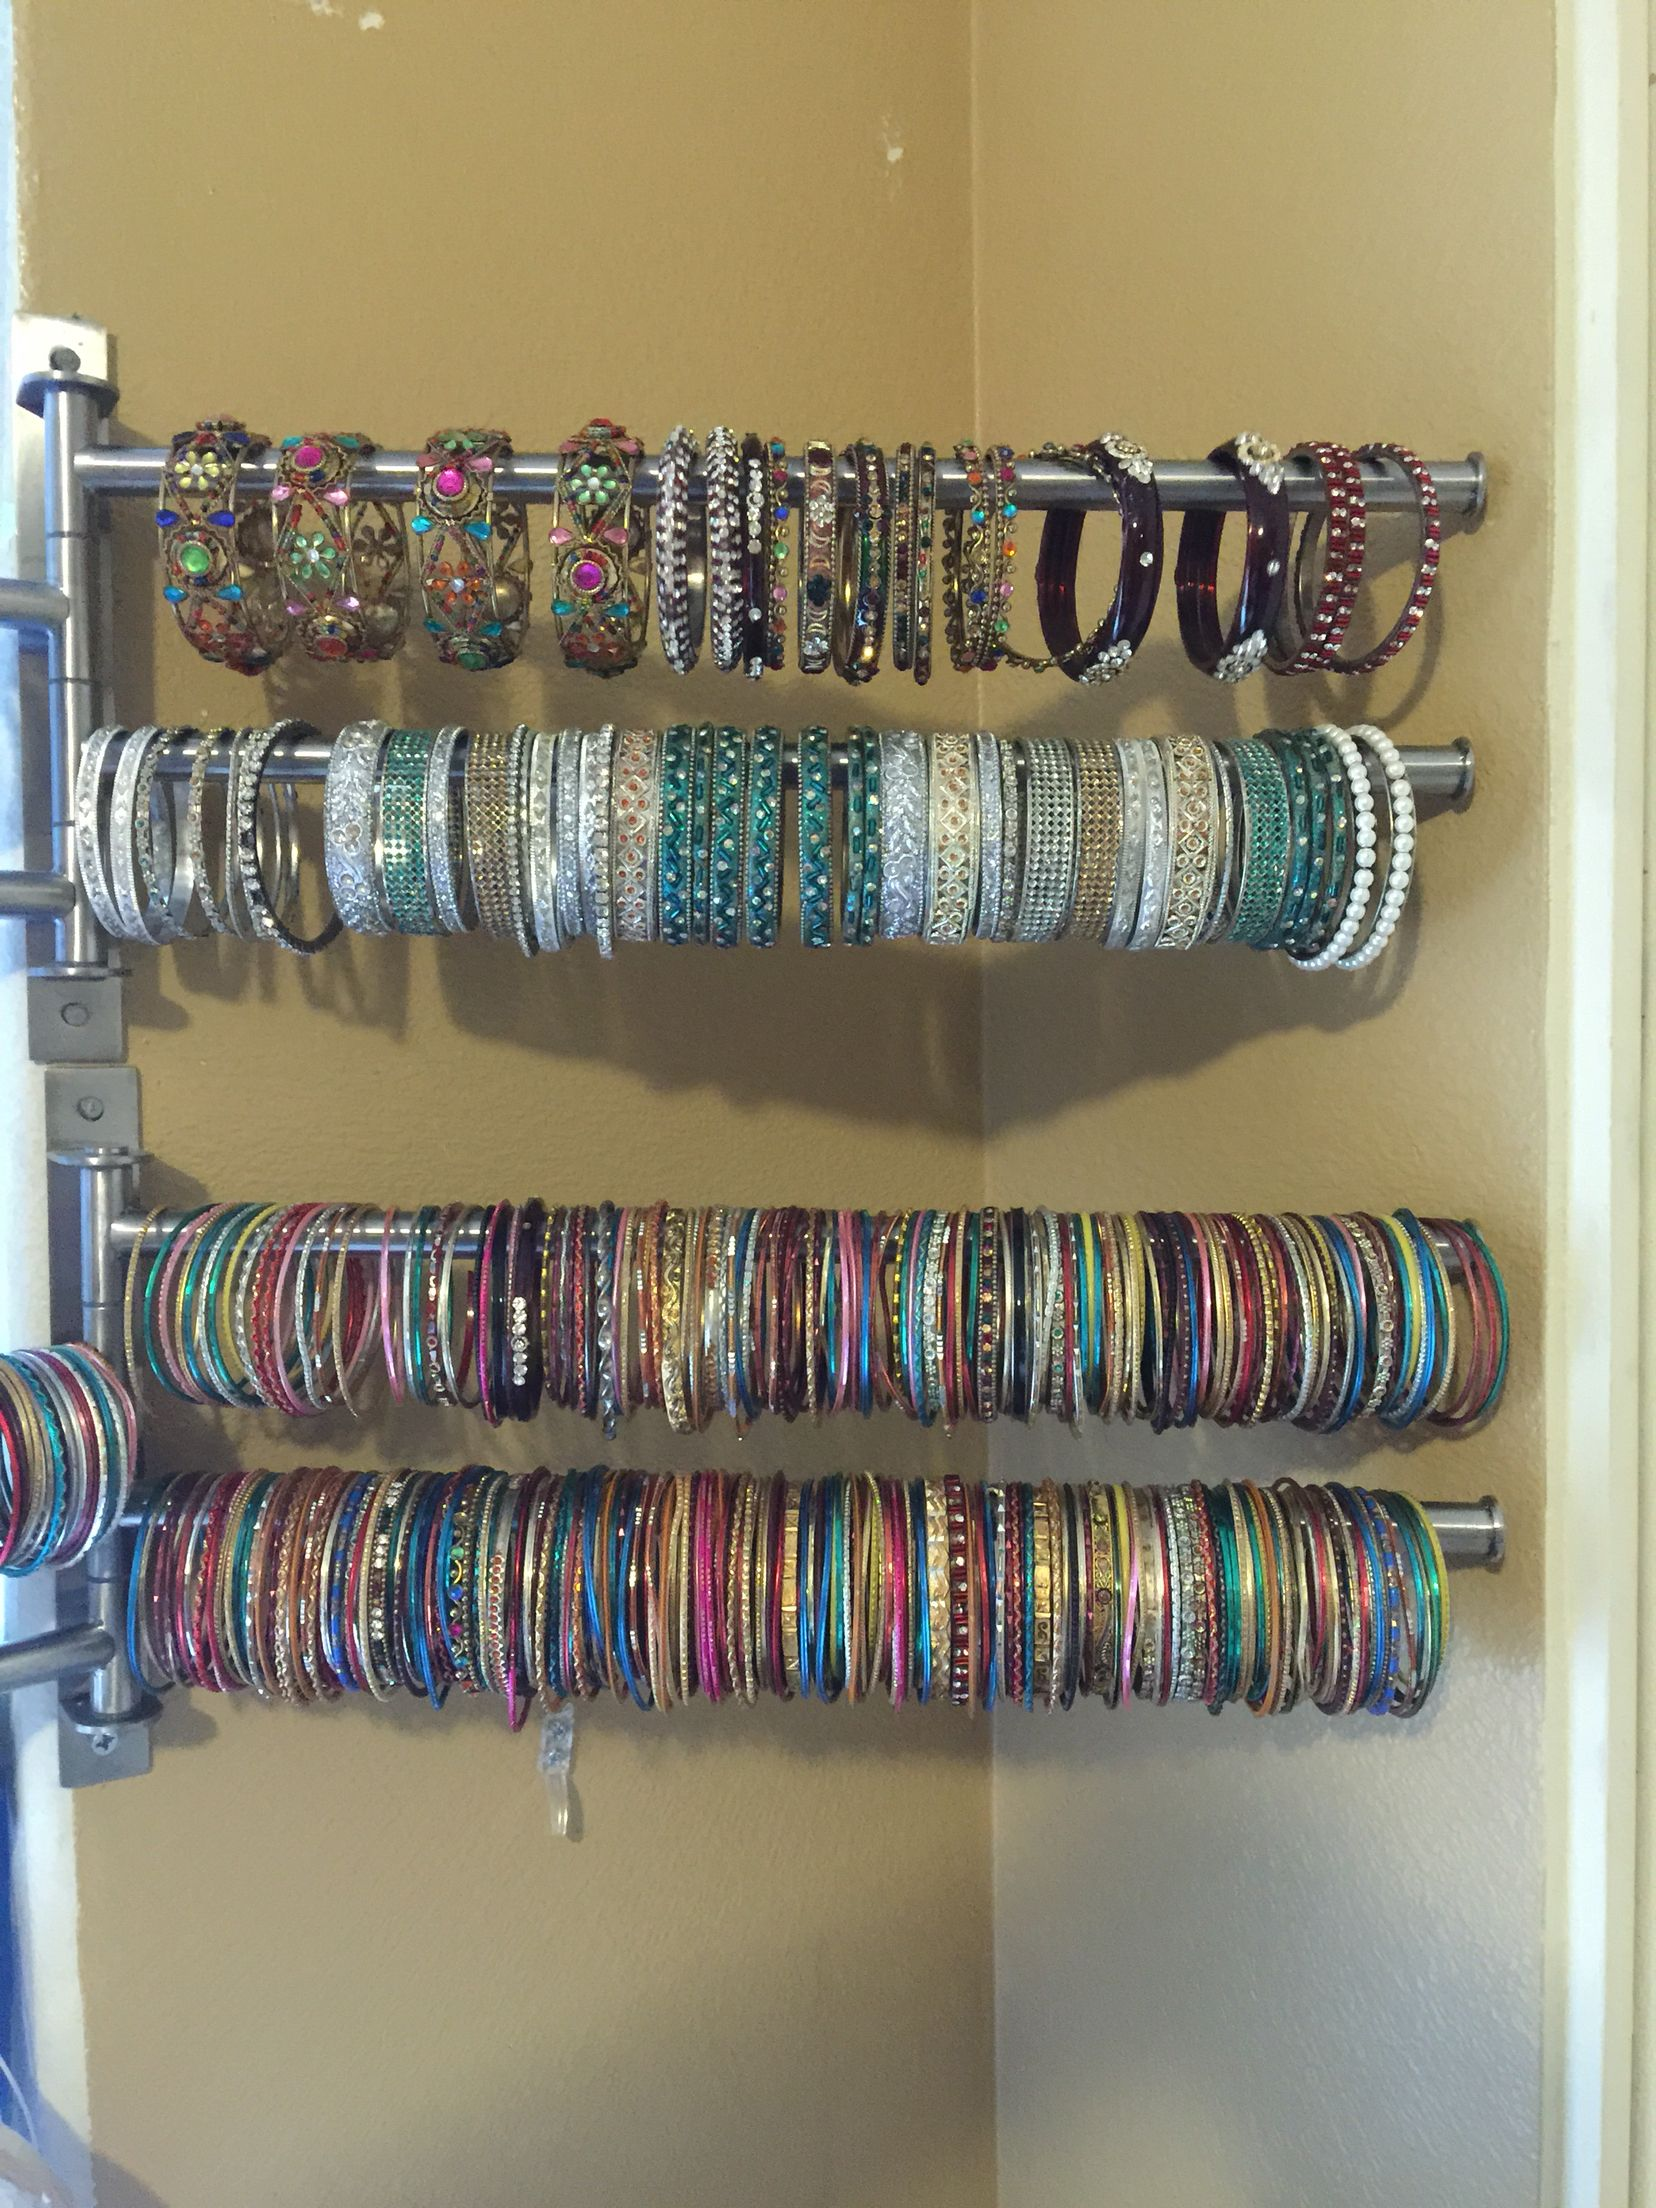 Used Towel Hanger As My New Bangle Organizer Adds Decor To Your Room And Bangles Stay Sorted